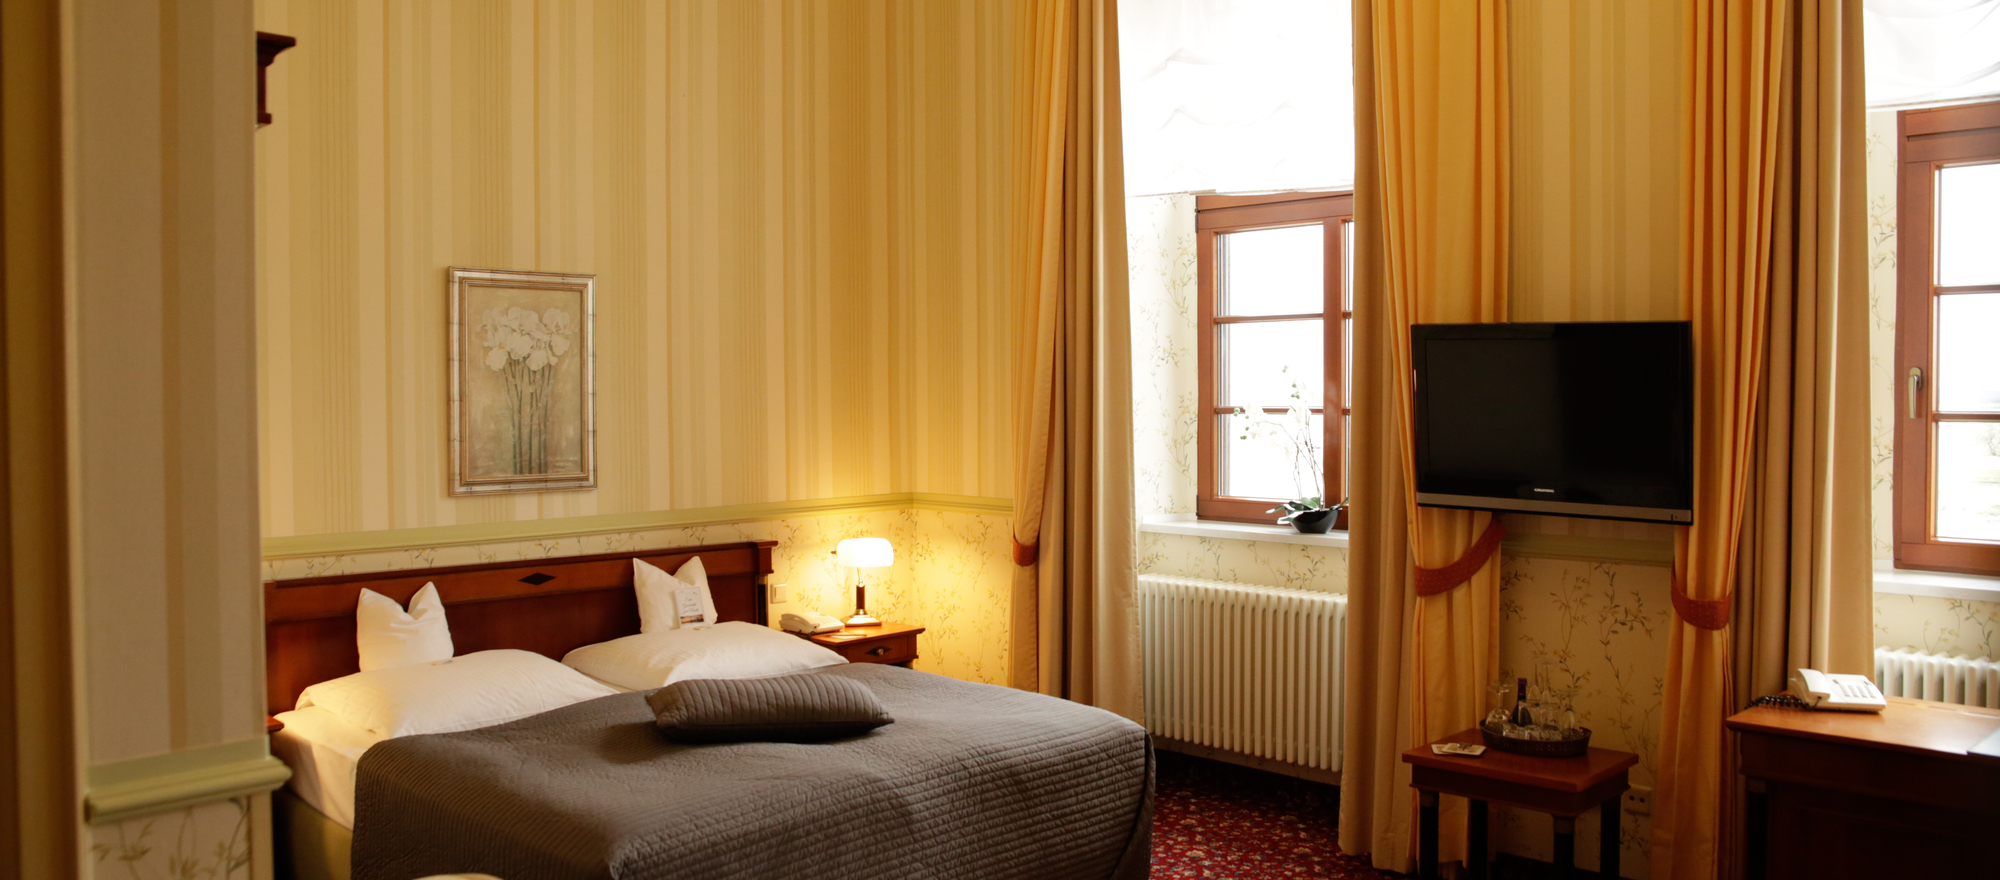 Ringhotel Tangermünde in Tangermuende double room in the main house